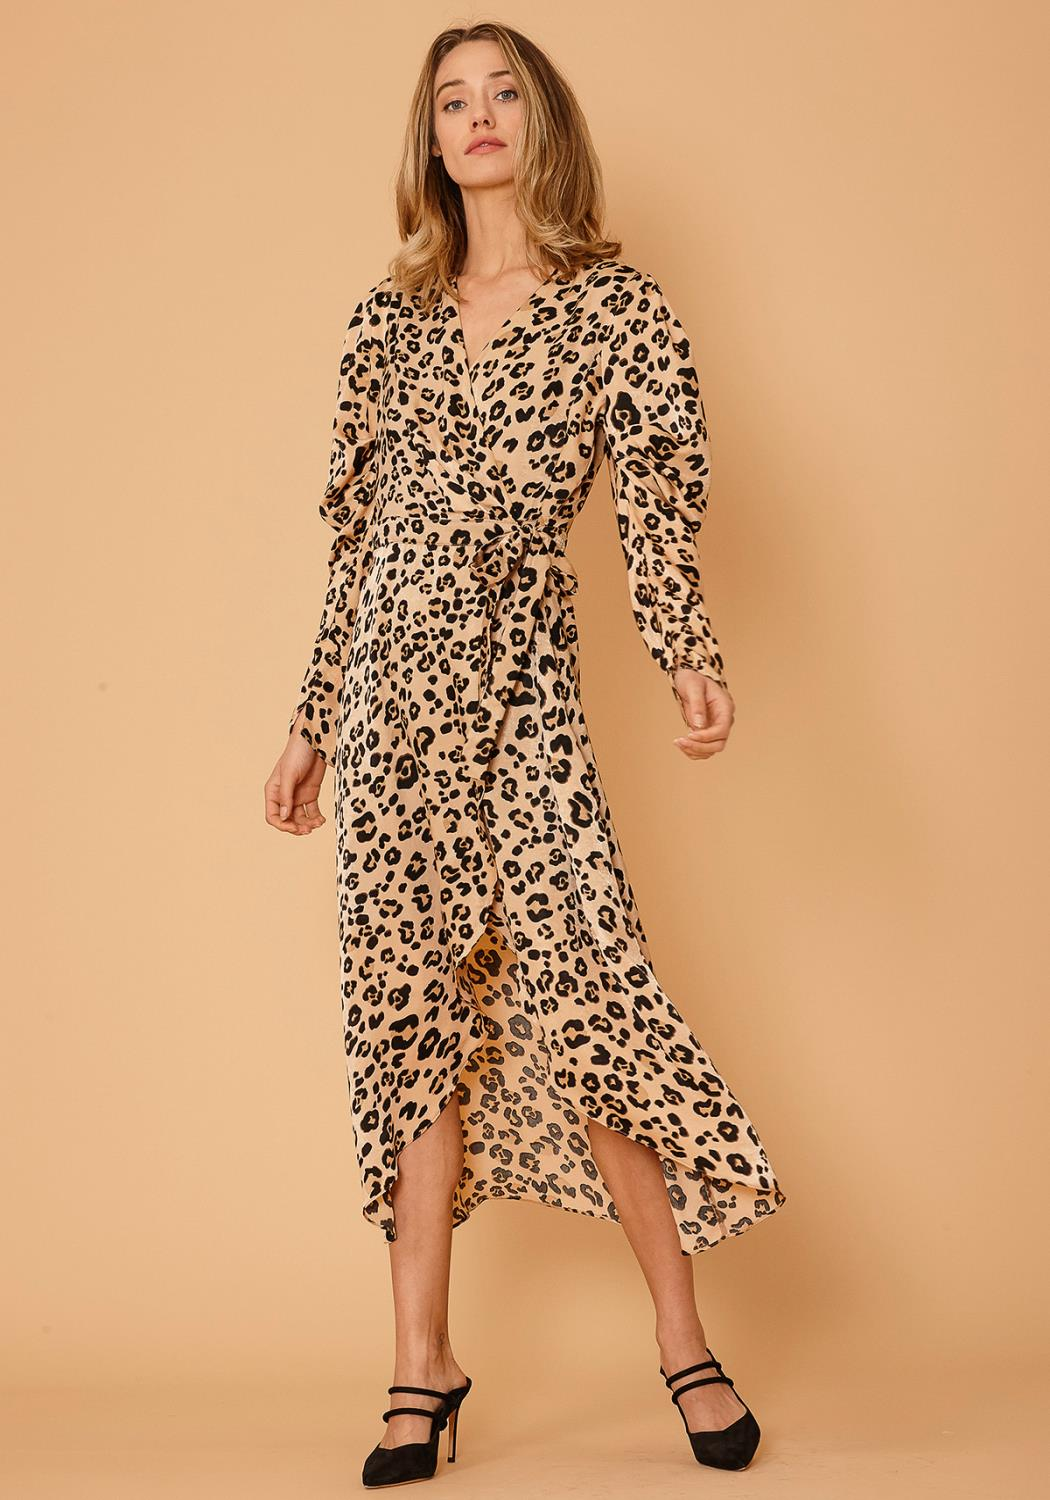 Nurode Leopard Print Puffy Shoulder Dress